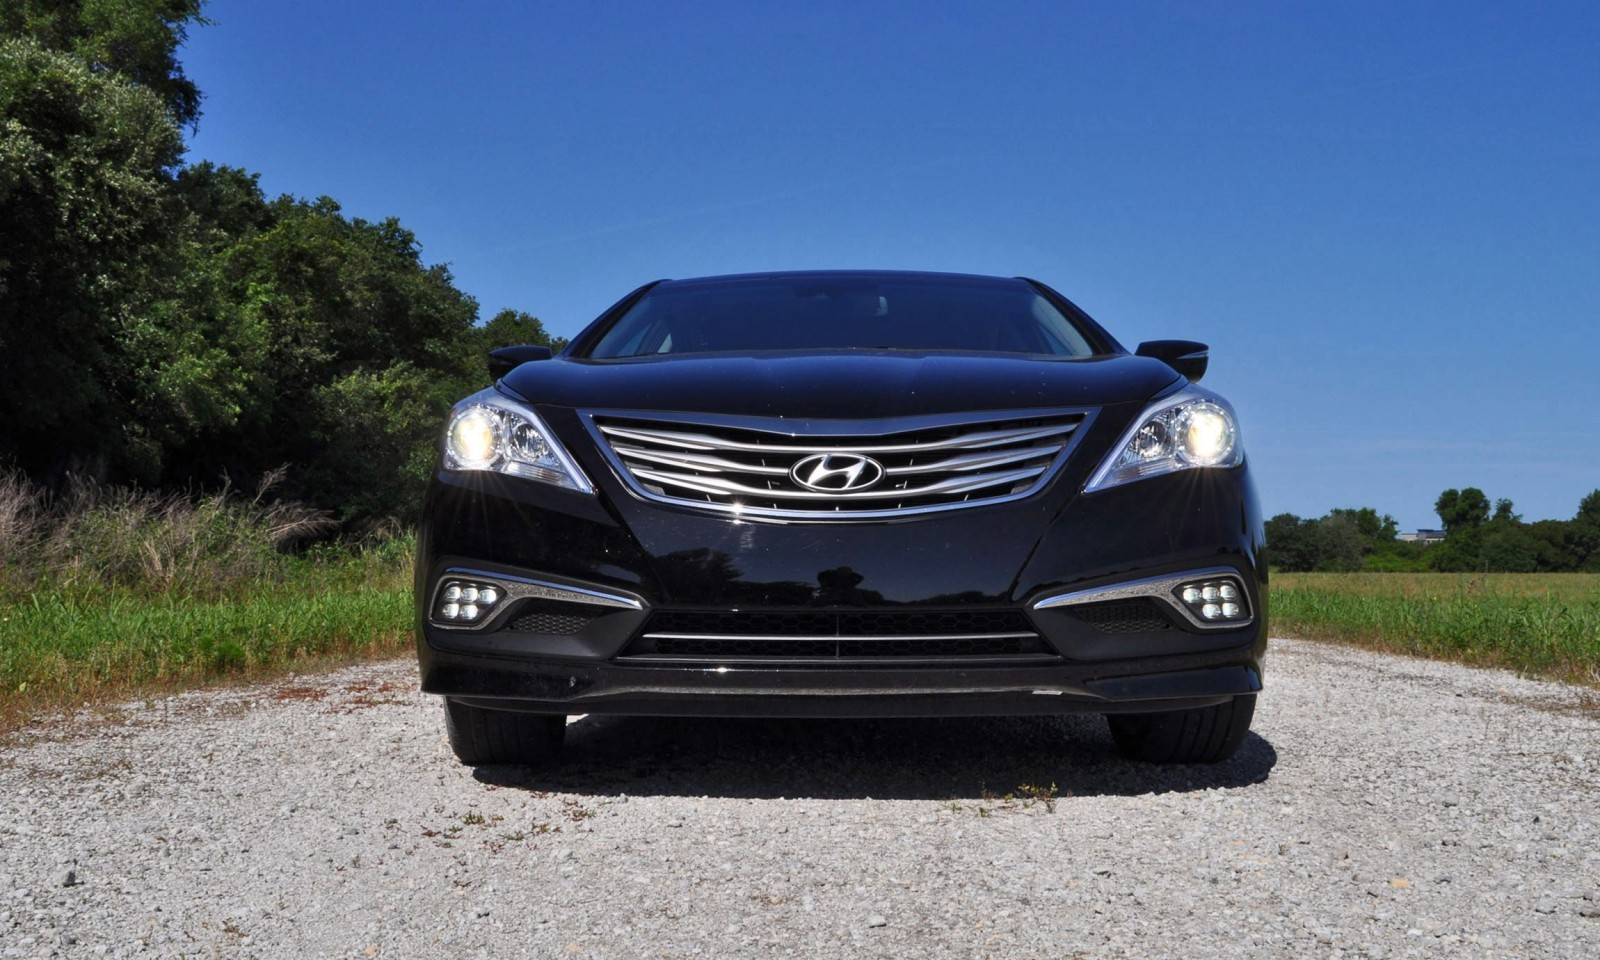 Road Test Review - 2015 Hyundai AZERA Limited 8